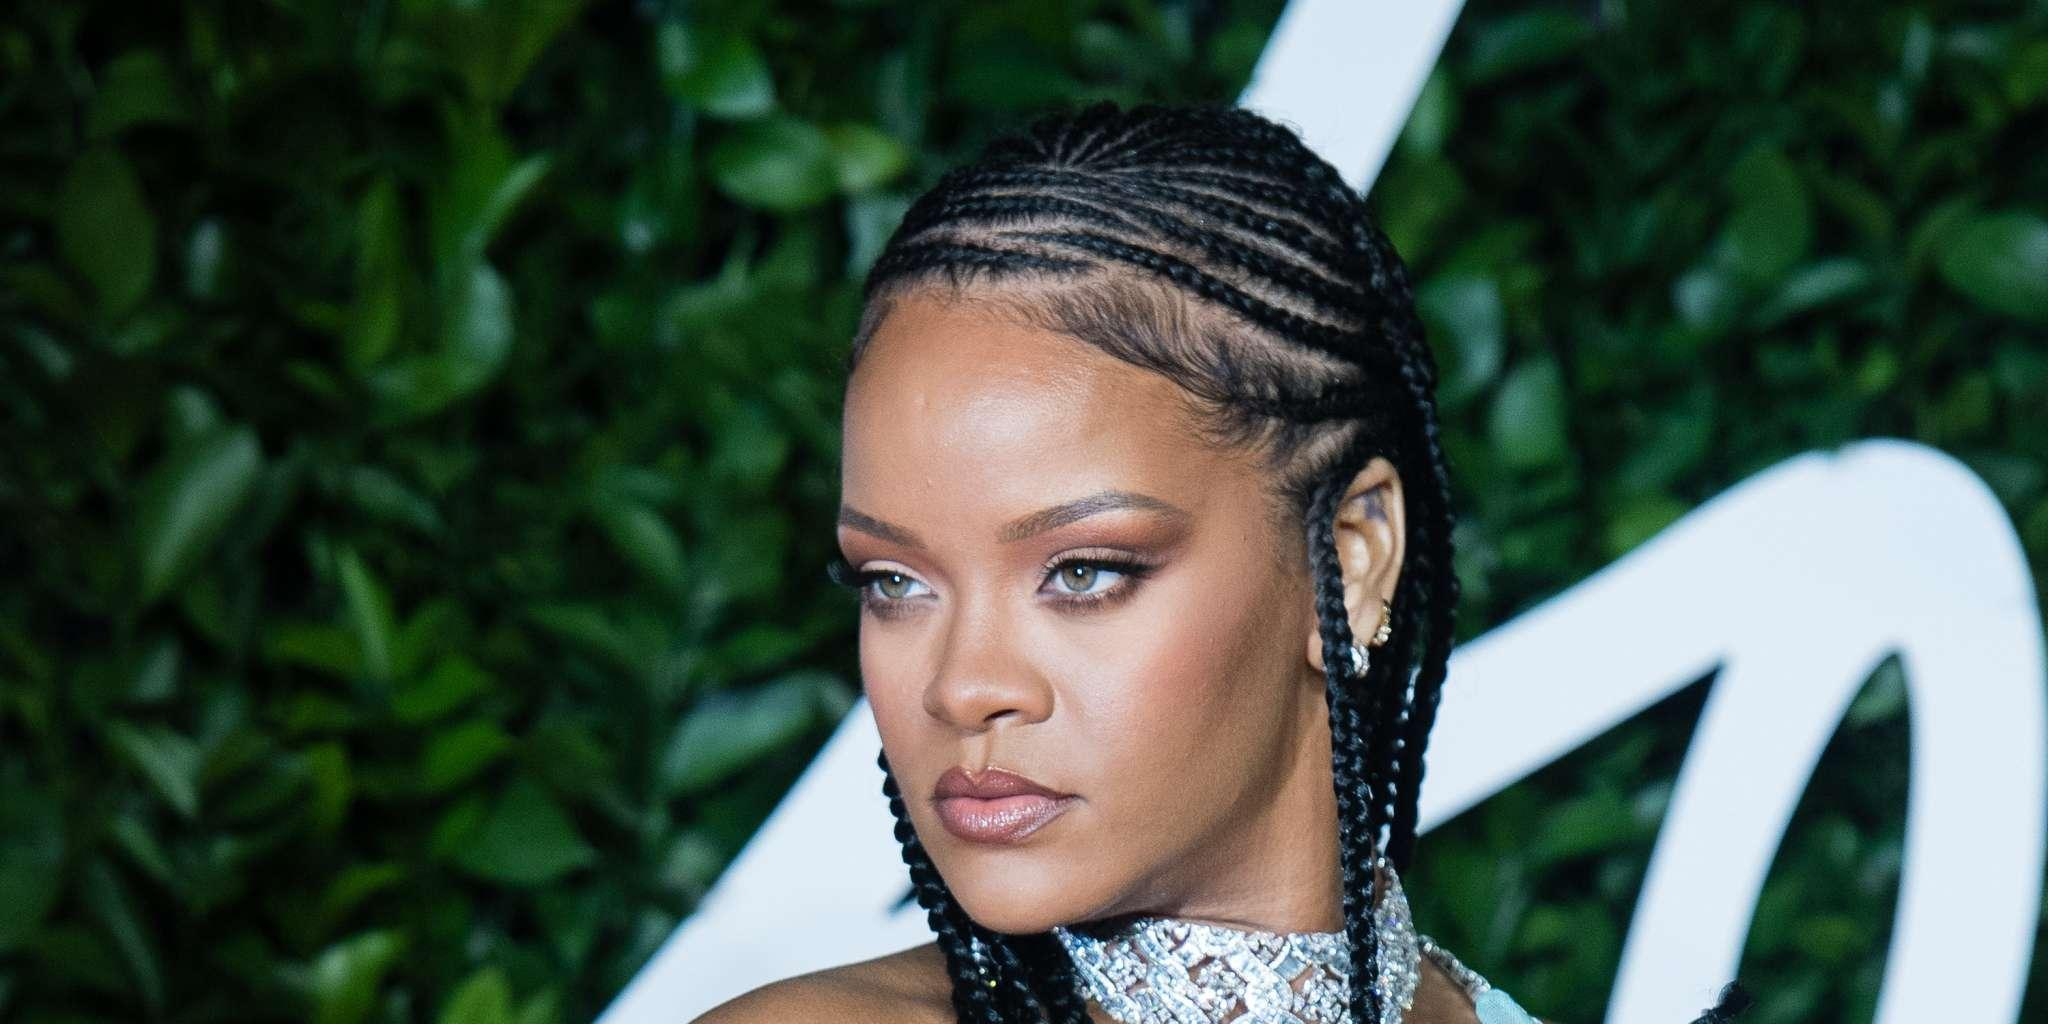 Rihanna Set Will Open Savage X Fenty Stores In 2022